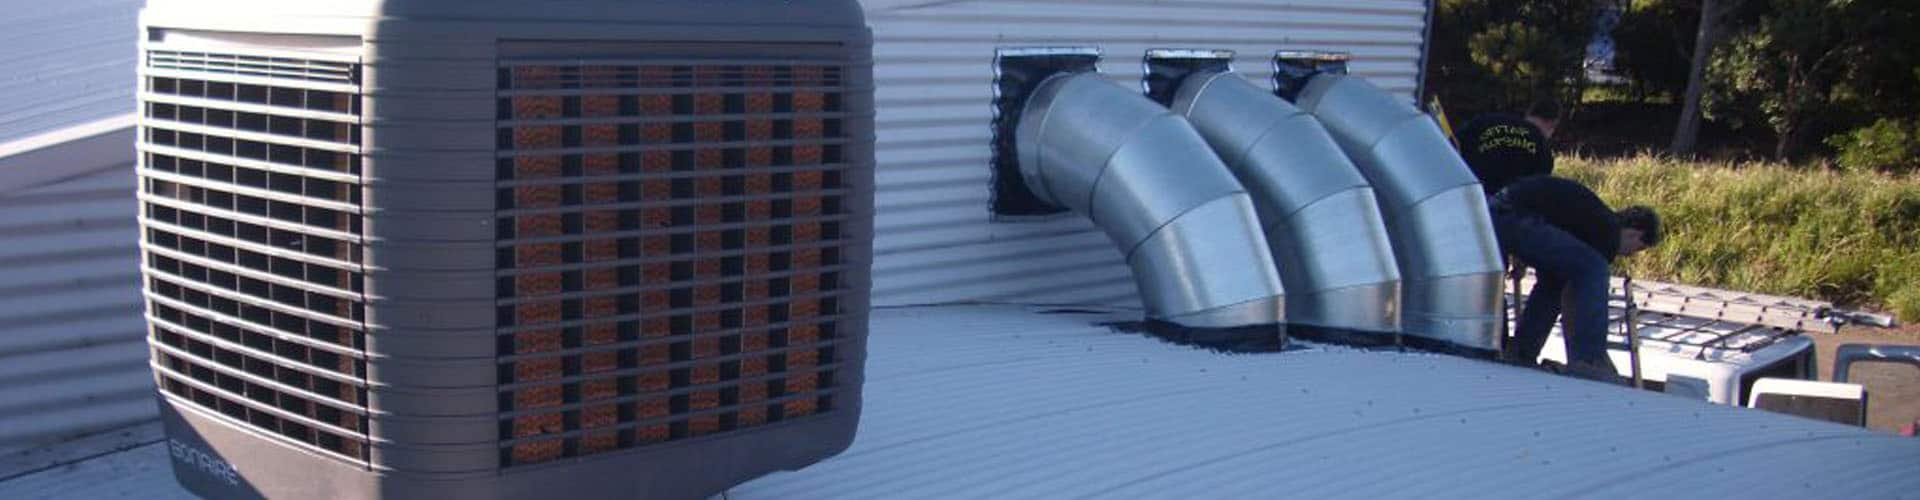 How Swamp Coolers Work (Evaporative Coolers)